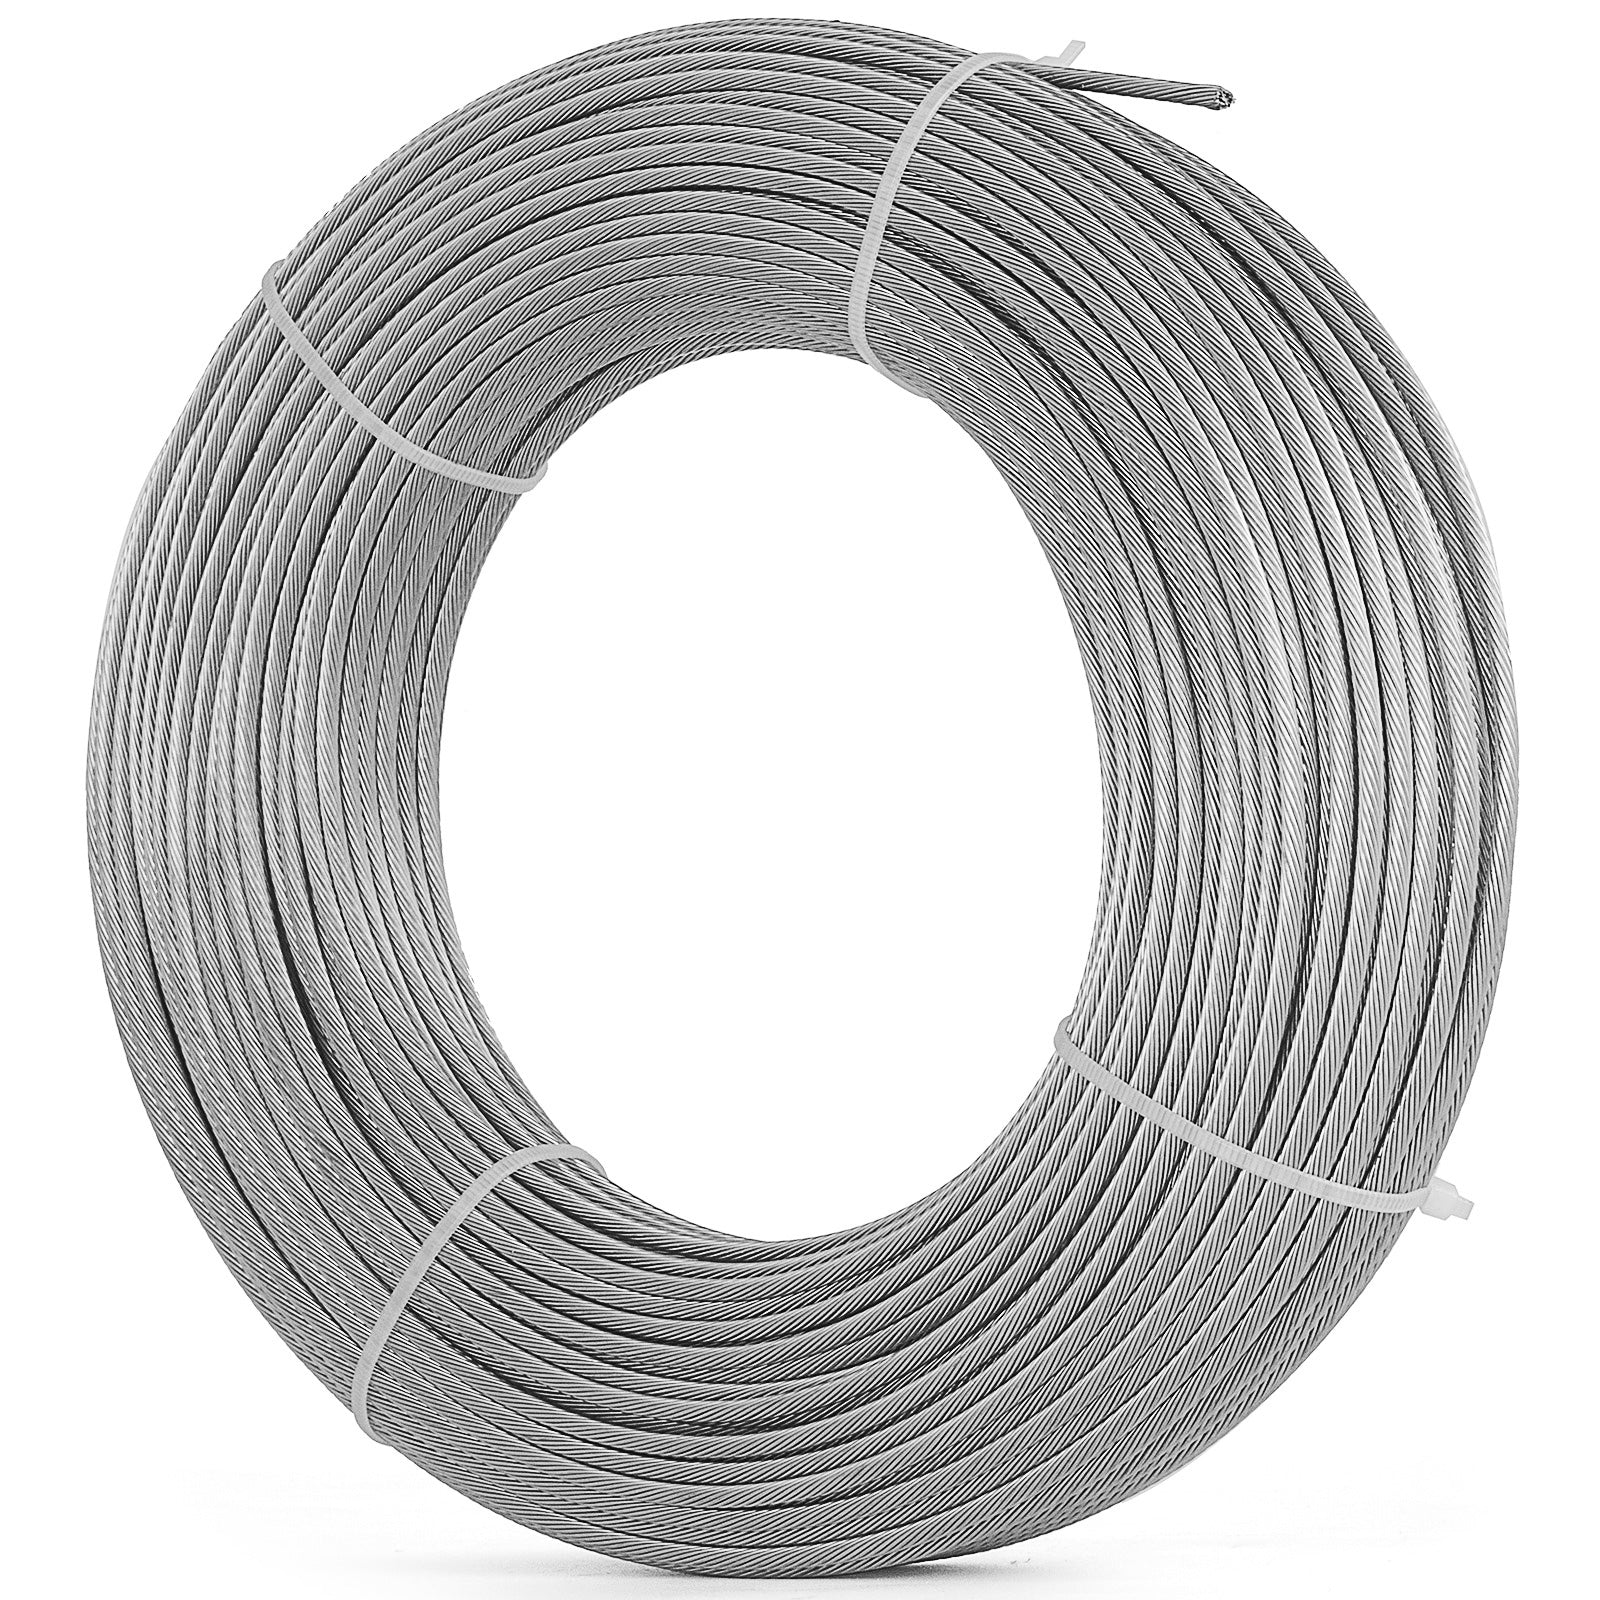 1*19 316 Stainless Steel Cable 100ft 1/8inch Wire Rope